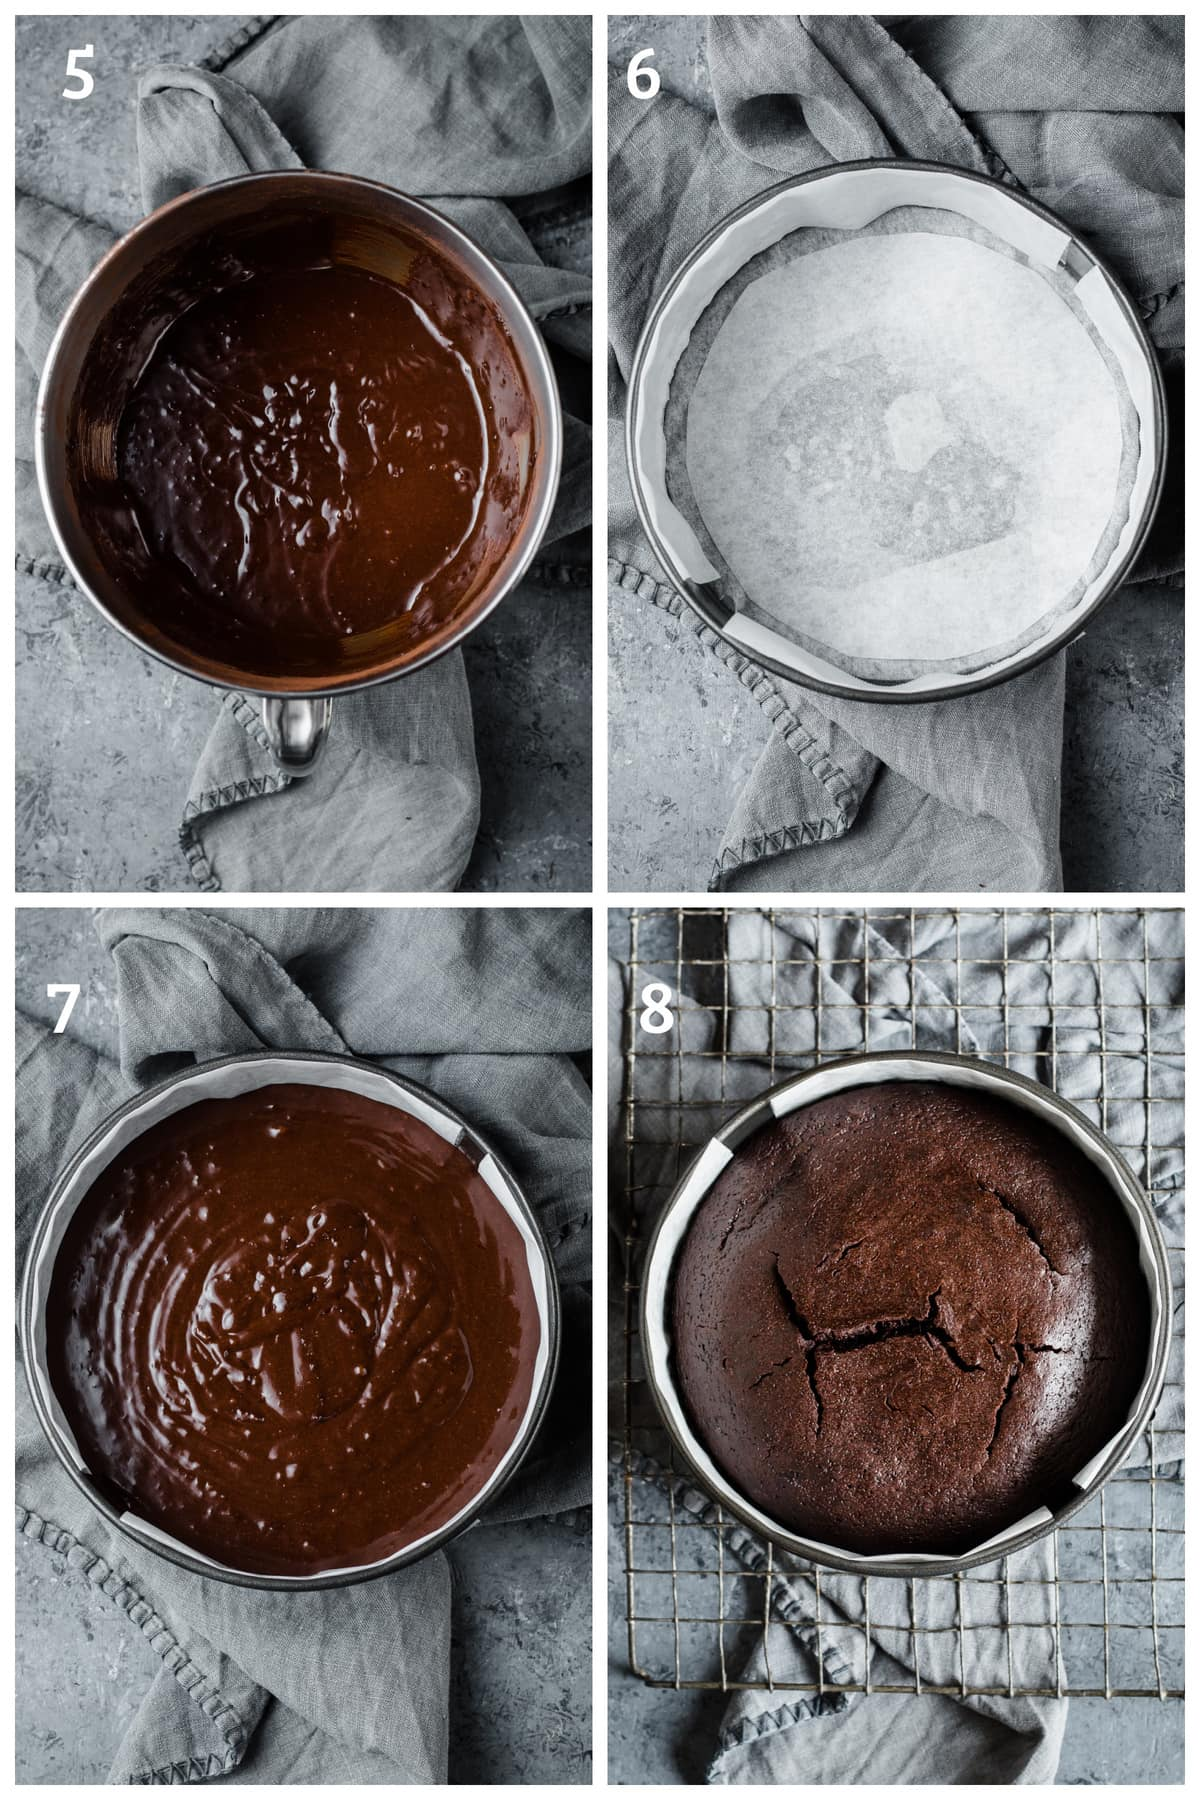 flourless chocolate cake batter being poured in a springform pan, baked and then cooled on a cooling rack